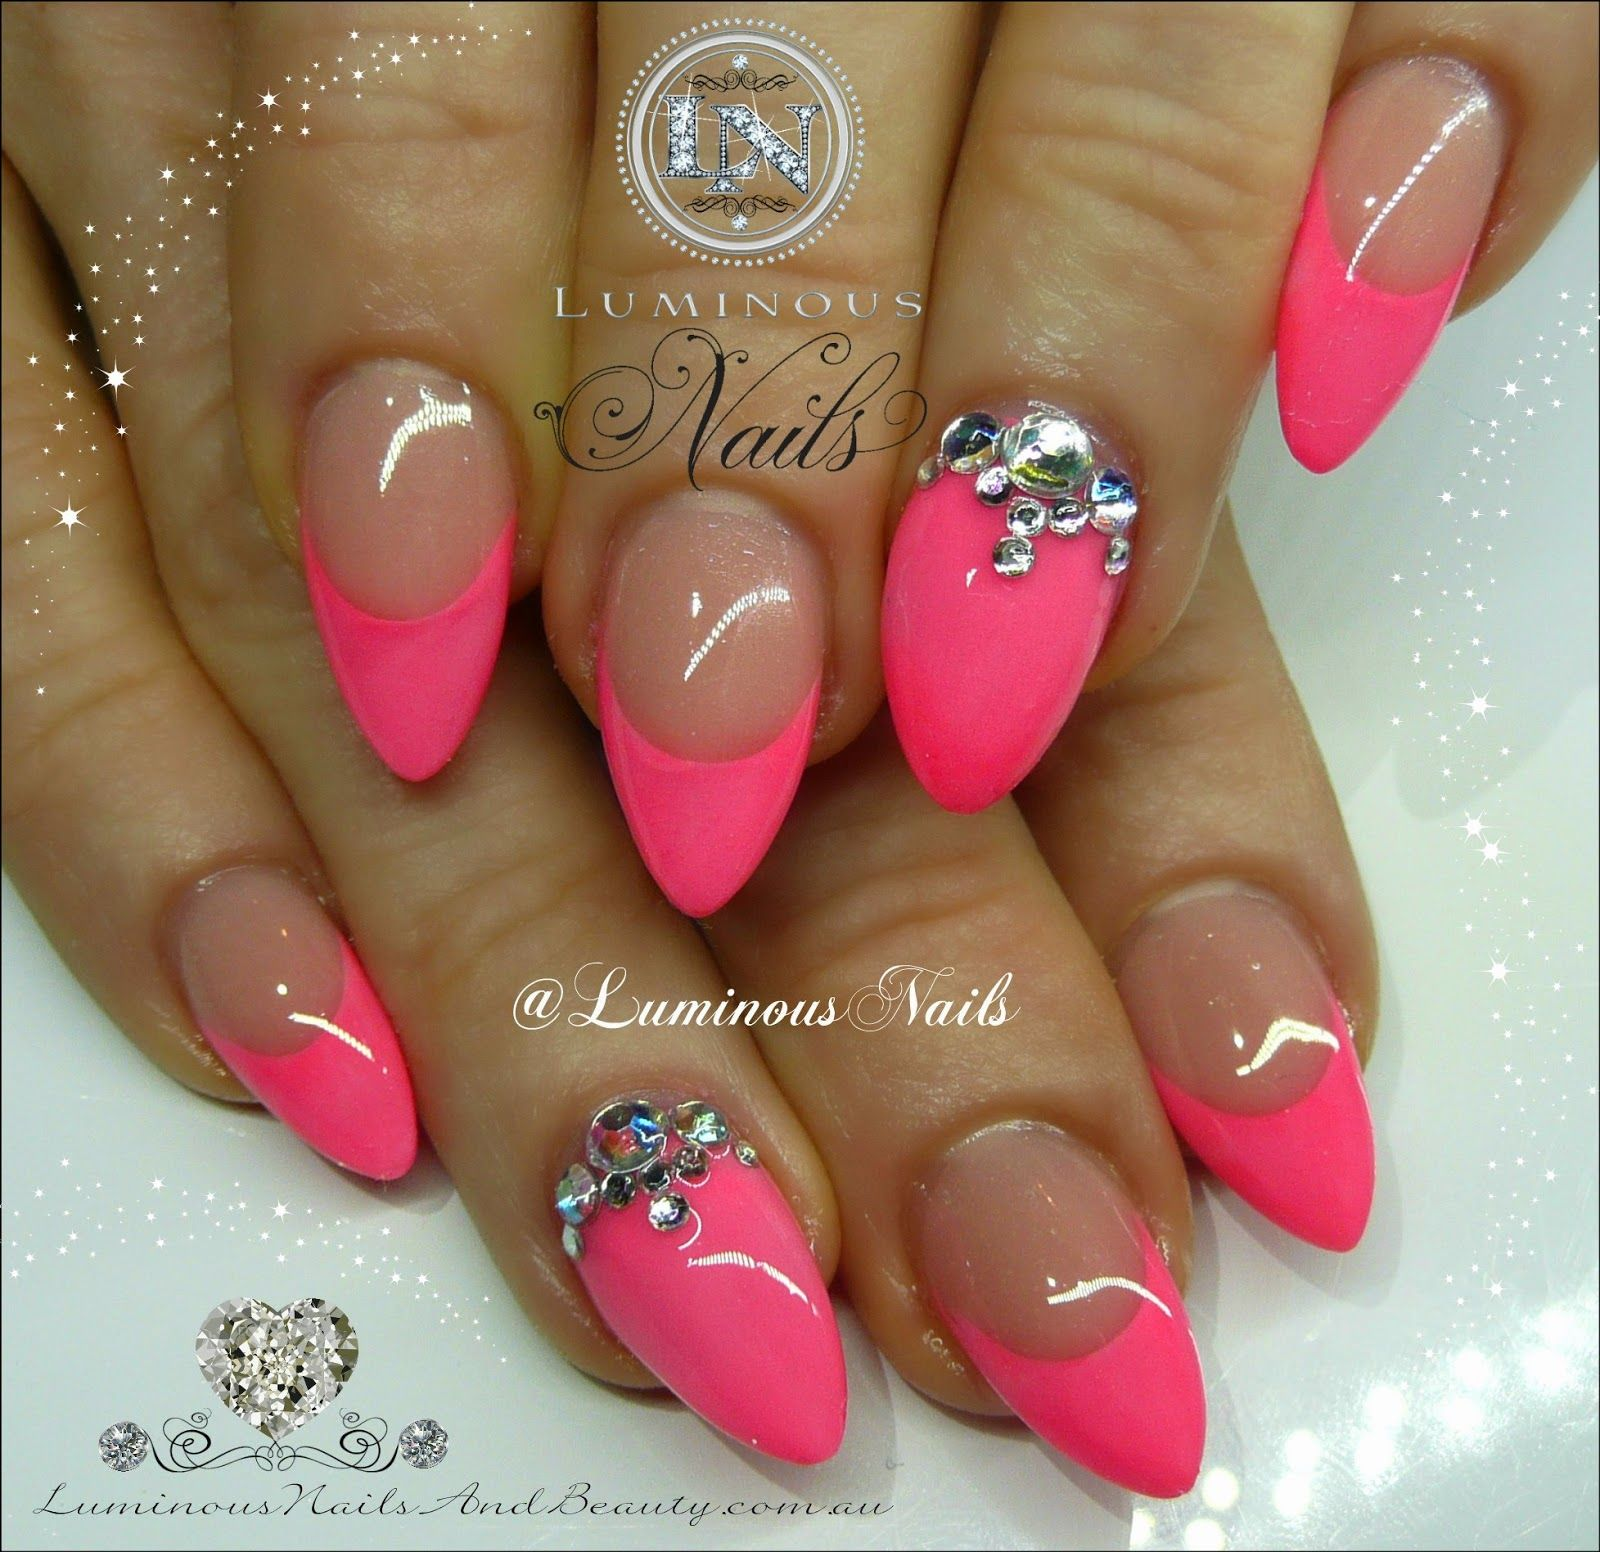 Luminous+Nails+&+Beauty,+Gold+Coast+Queensland.+Hot+Pink+Nails+with+ ...